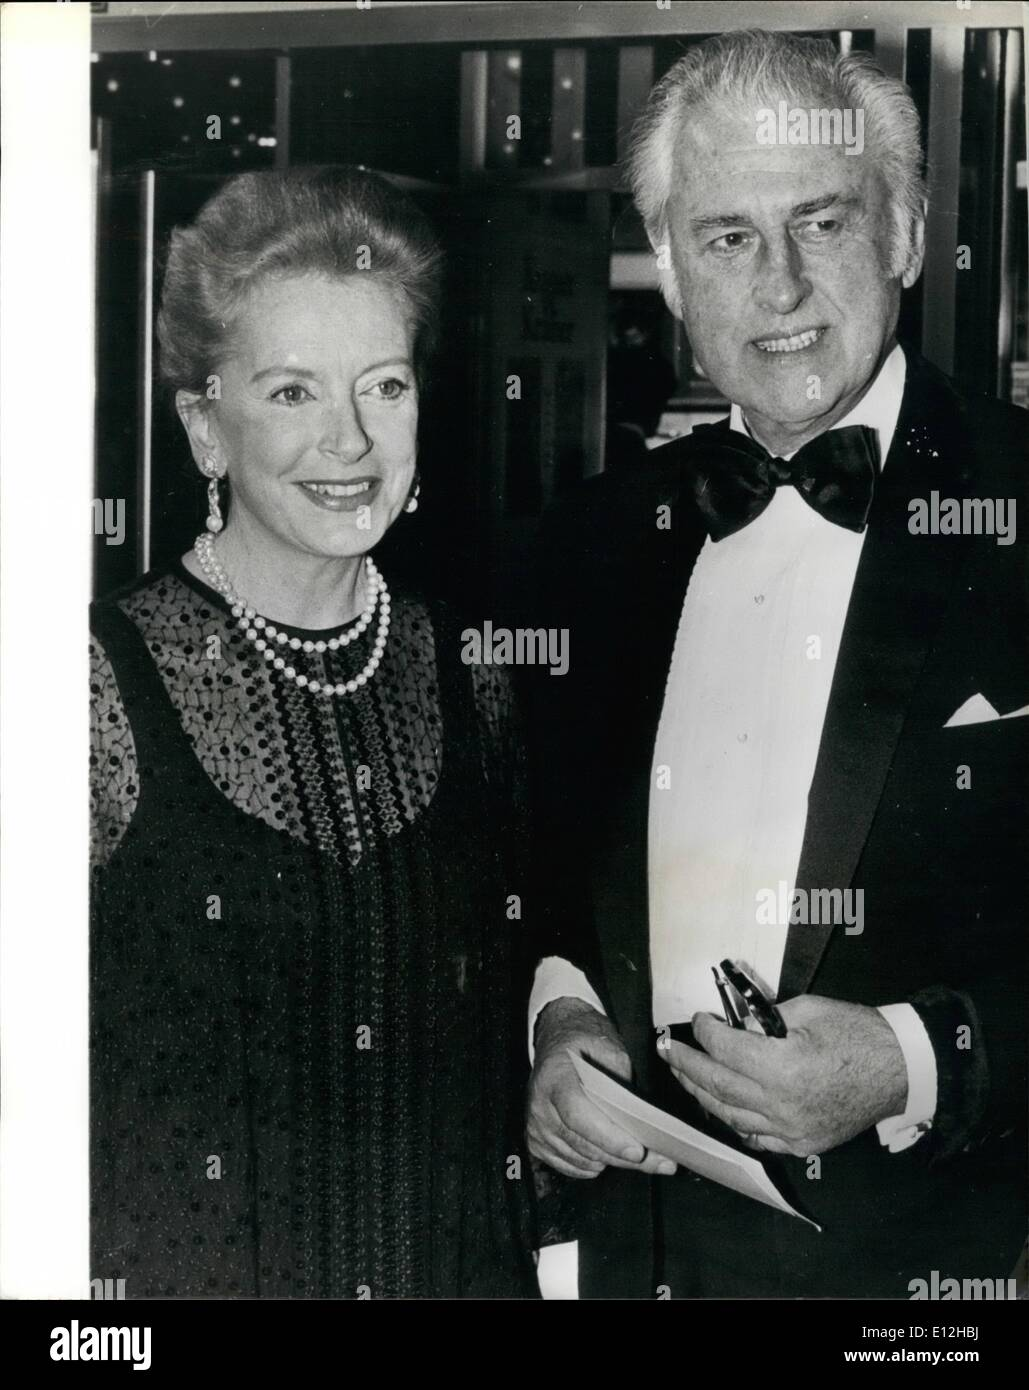 Jan. 03, 2012 - Stewart Granger and Deborah Kerr at Royal Film Premiere. A galaxy of stars were present at last night's Royal Film Performance of ''Kramer Vs Kramer'' which was shown in the presence of the Queen and Prince Philip. Among the guest celebrities were Stewart Granger and Deborah Kerr. Photo Shows: Stewart Granger and Deborah Kerr at last night's premiere at the Odeon, Leicester Square. - Stock Image